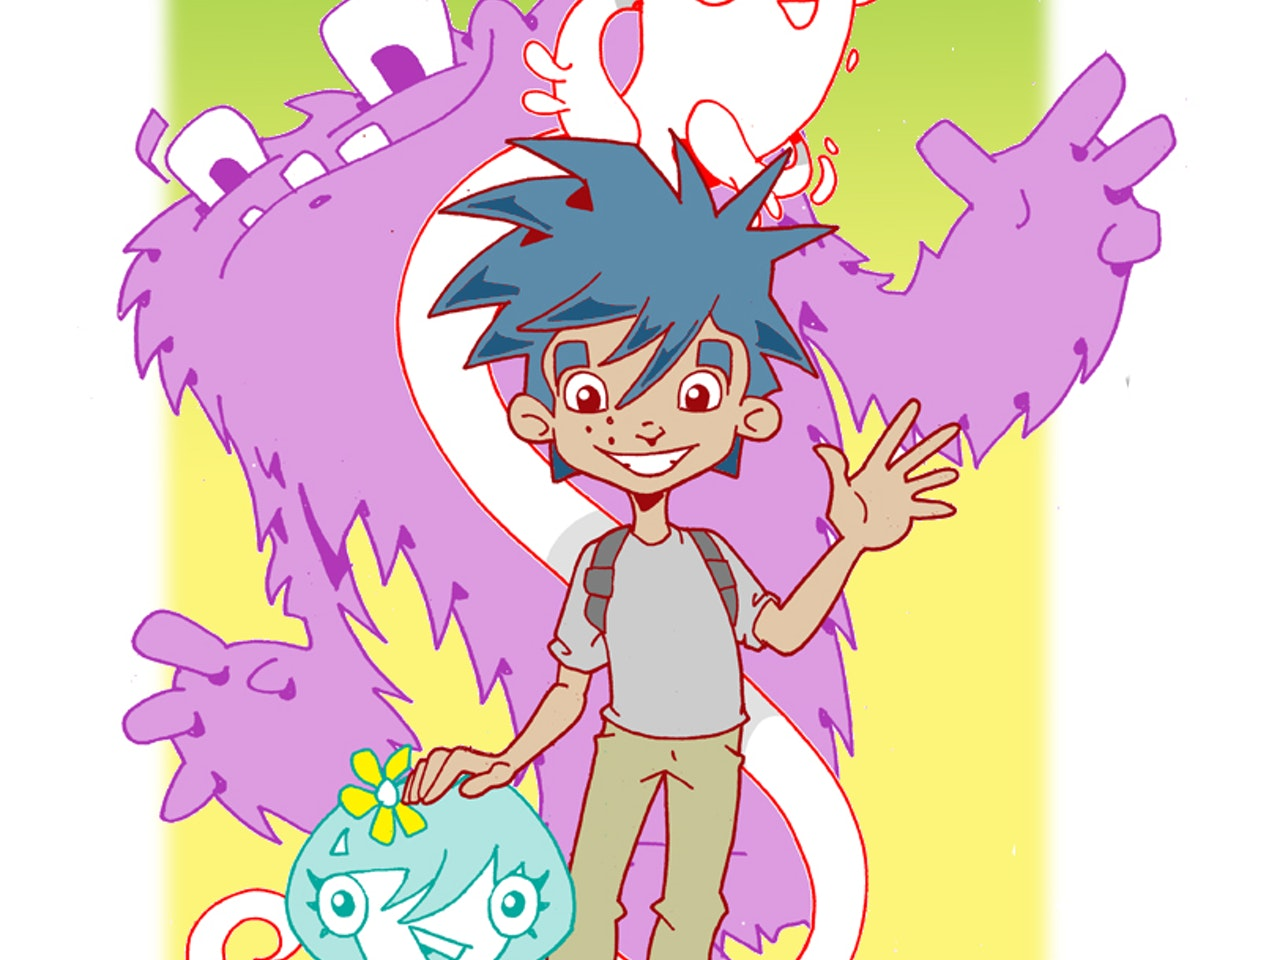 Cool urban vinyl funky friendly manga anime monster alien characters and teen boy